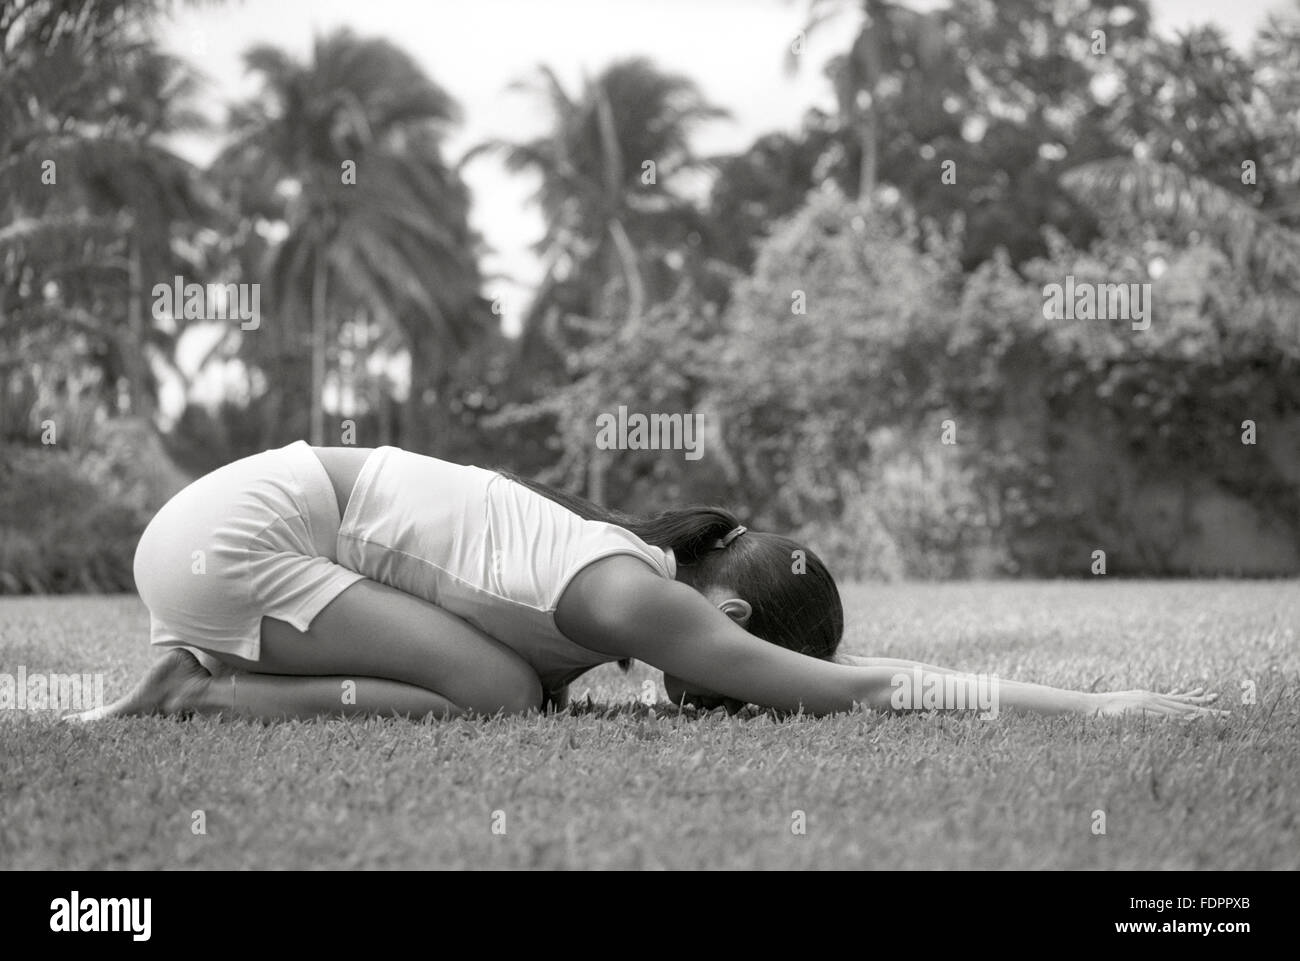 A woman sitting outdoors at Le Farm at San Benito, Philippines. Photo Stock